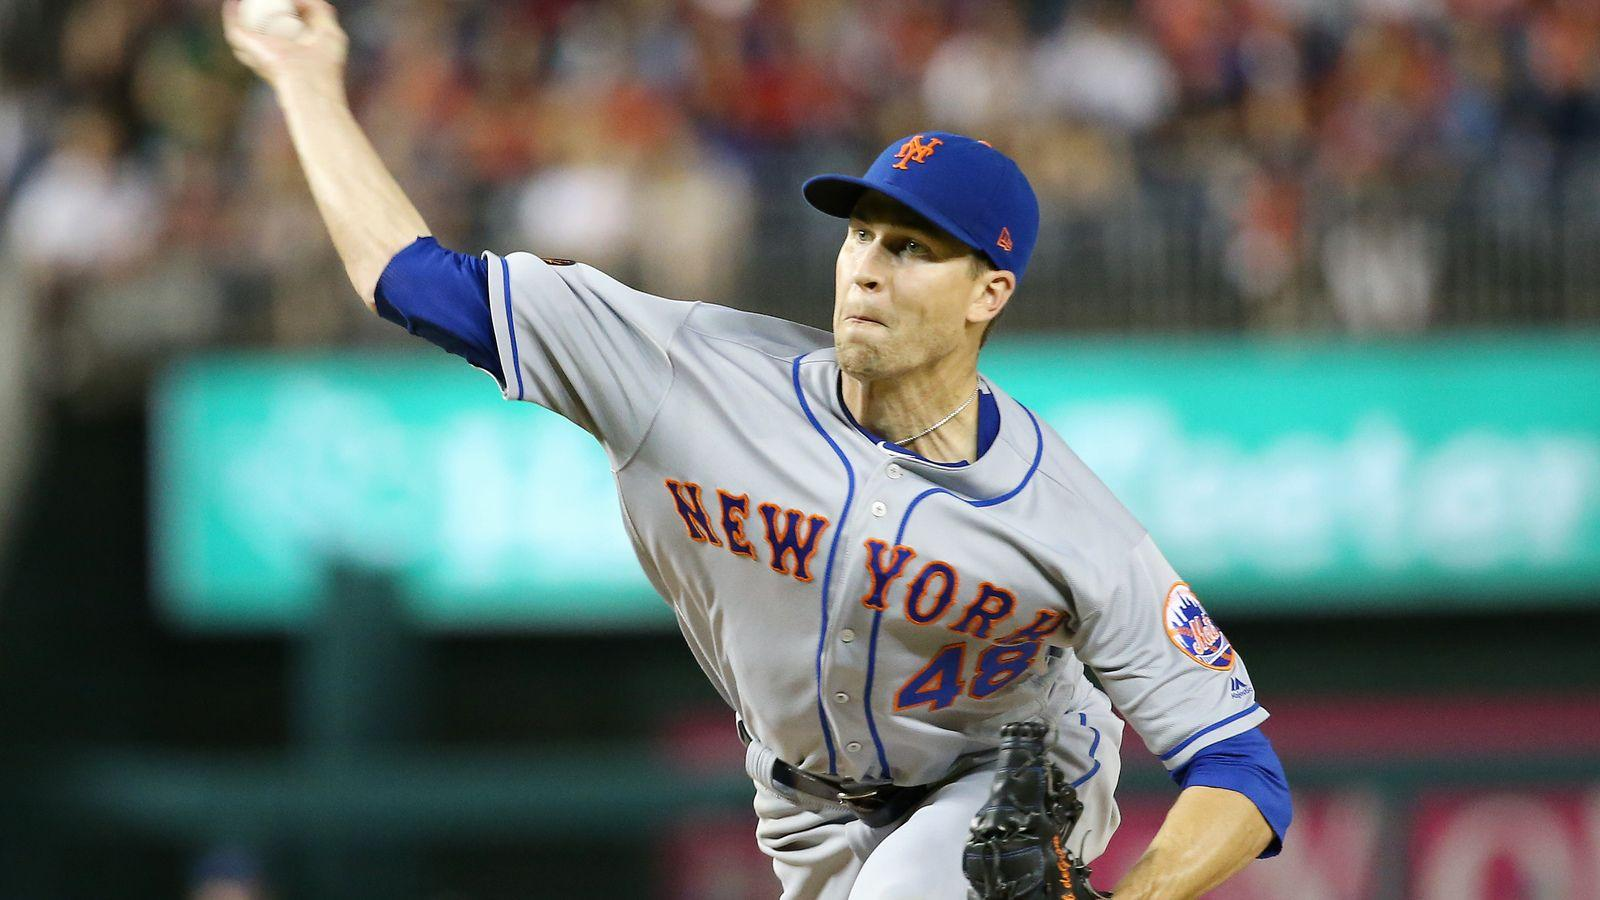 Jacob deGrom sets another record amid historic season